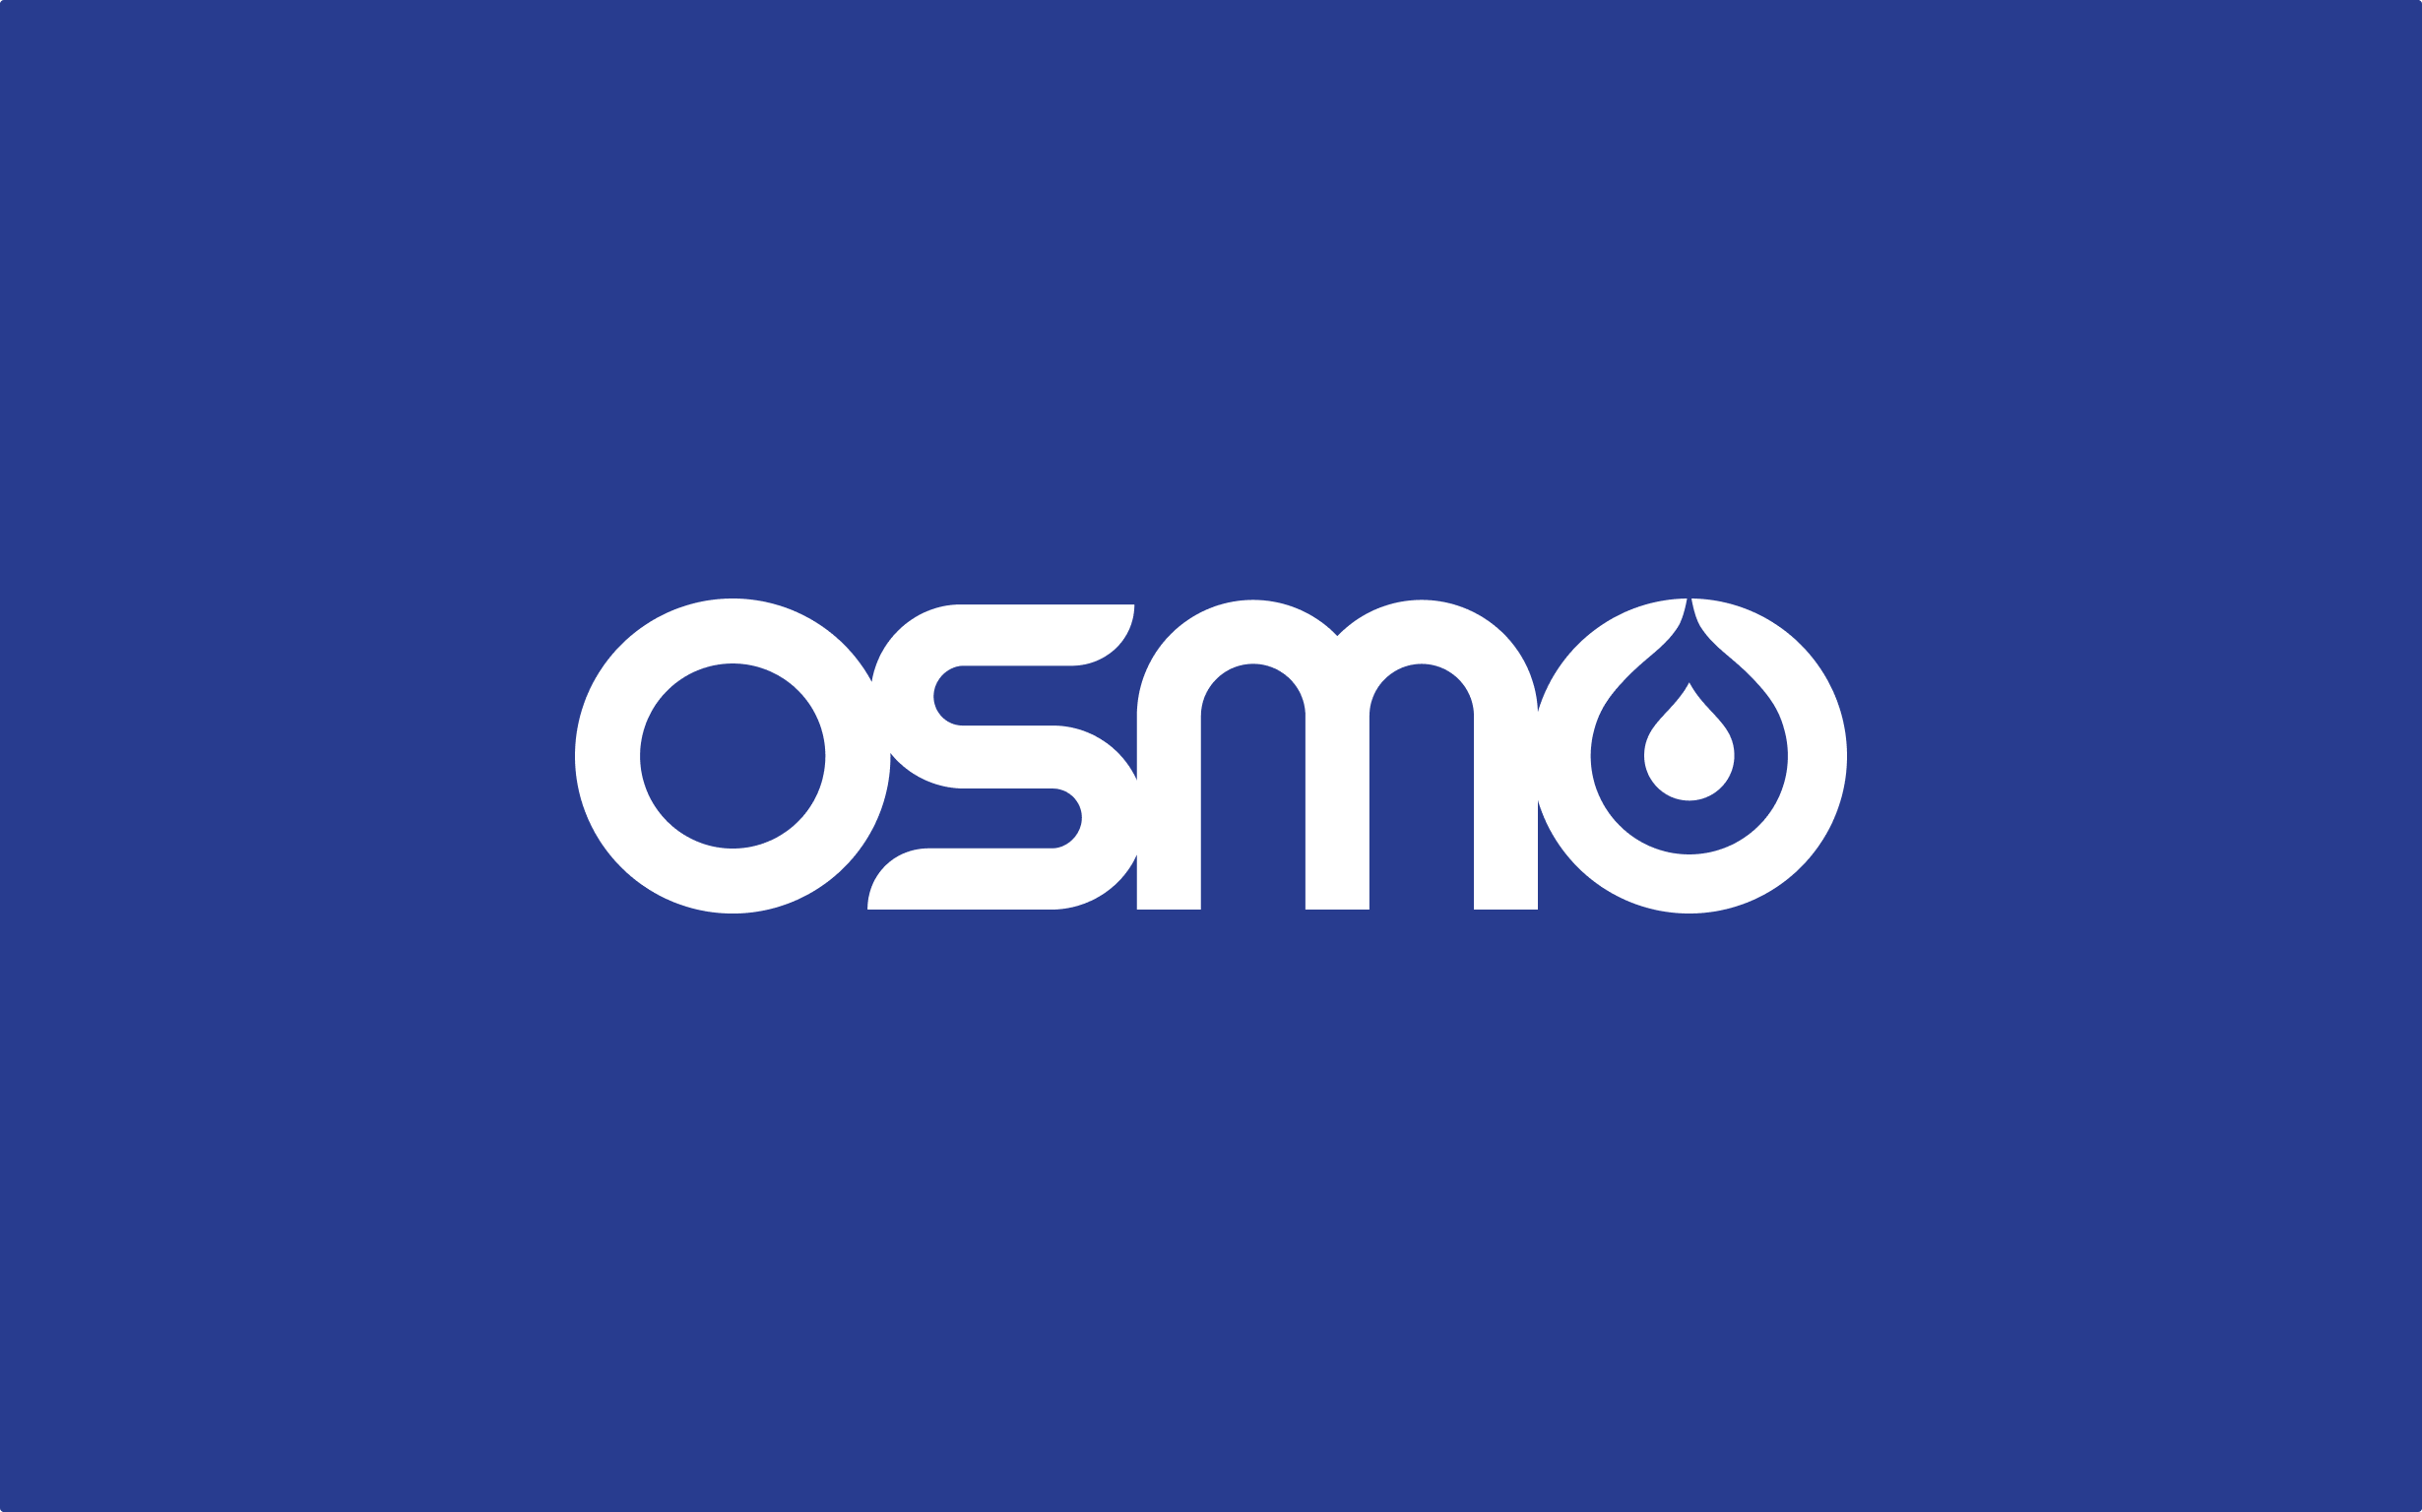 Osmo's full logo shows the name of the brand with the drop element contained within the final o.